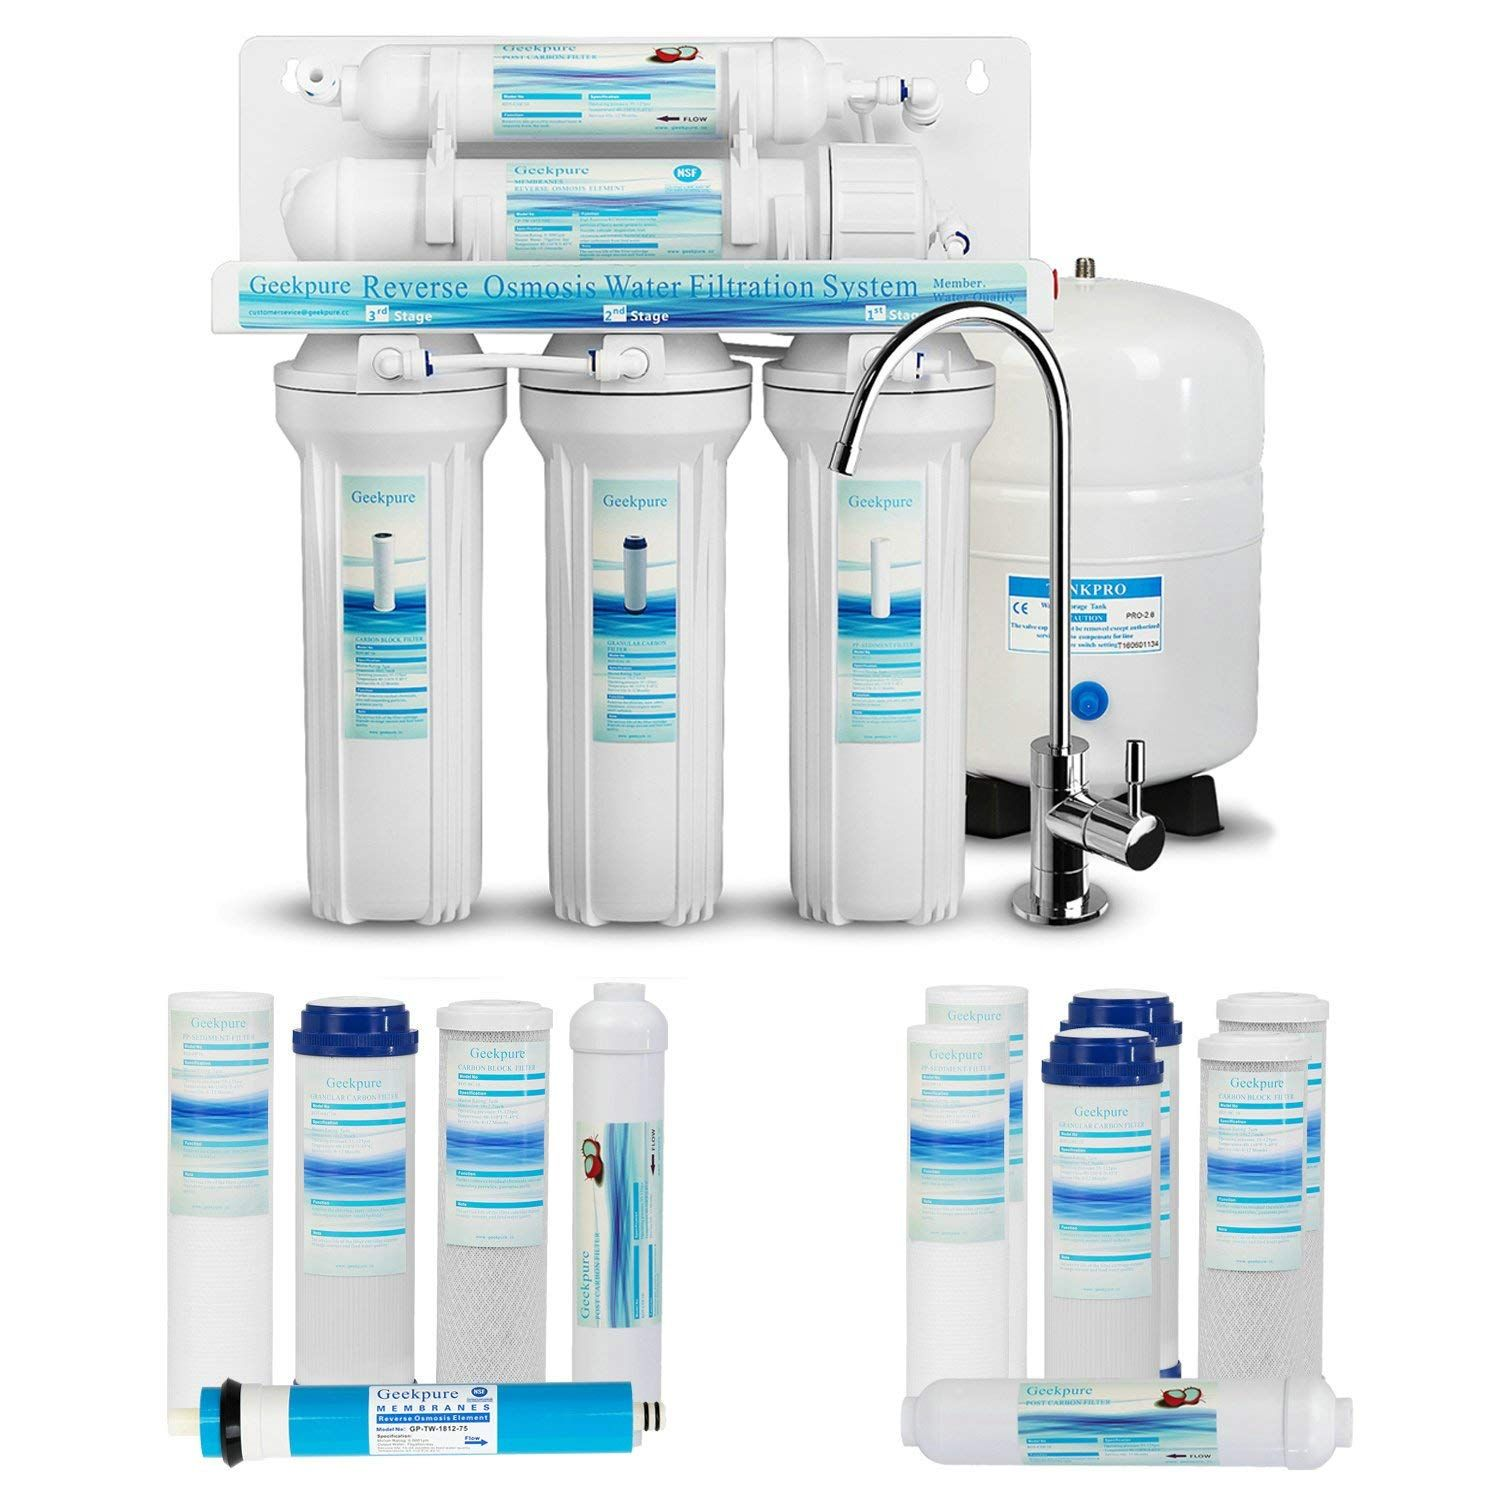 4 Best Reverse Osmosis System For Well Water Plus 1 To Avoid 2020 Buyers Guide Best Reverse Osmosis System Water Filters System Drinking Water Filter